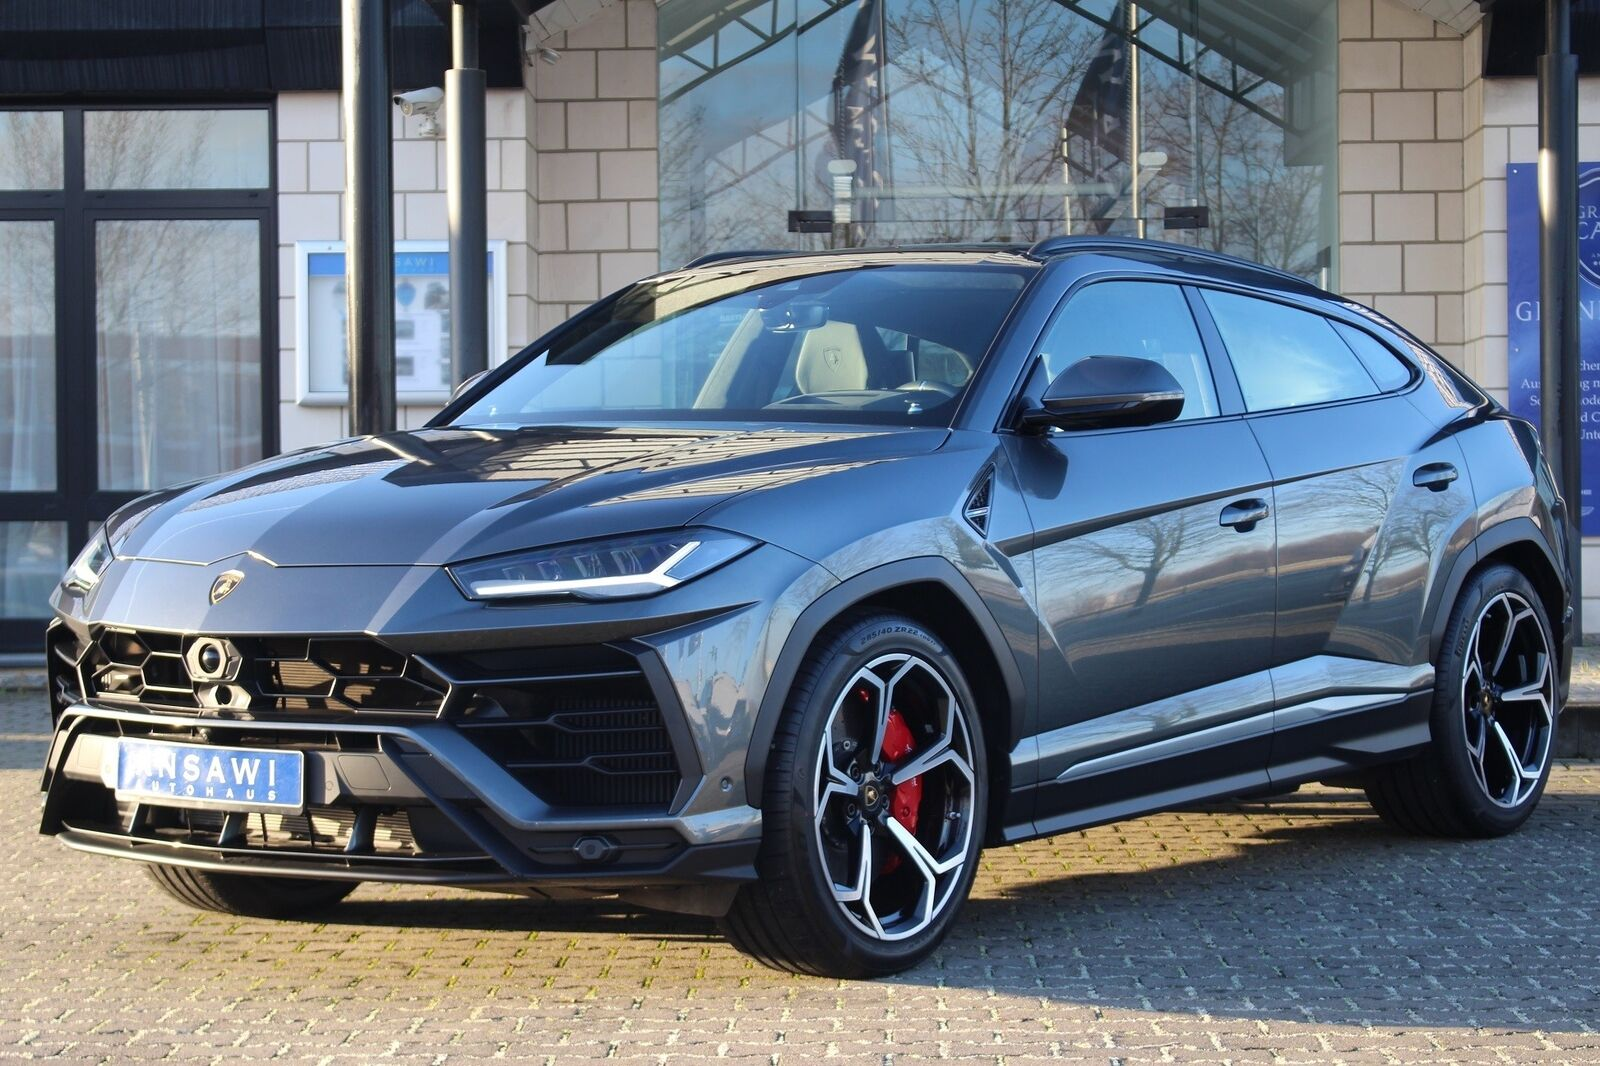 Lamborghini Urus Luxury Pulse Cars Germany For Sale